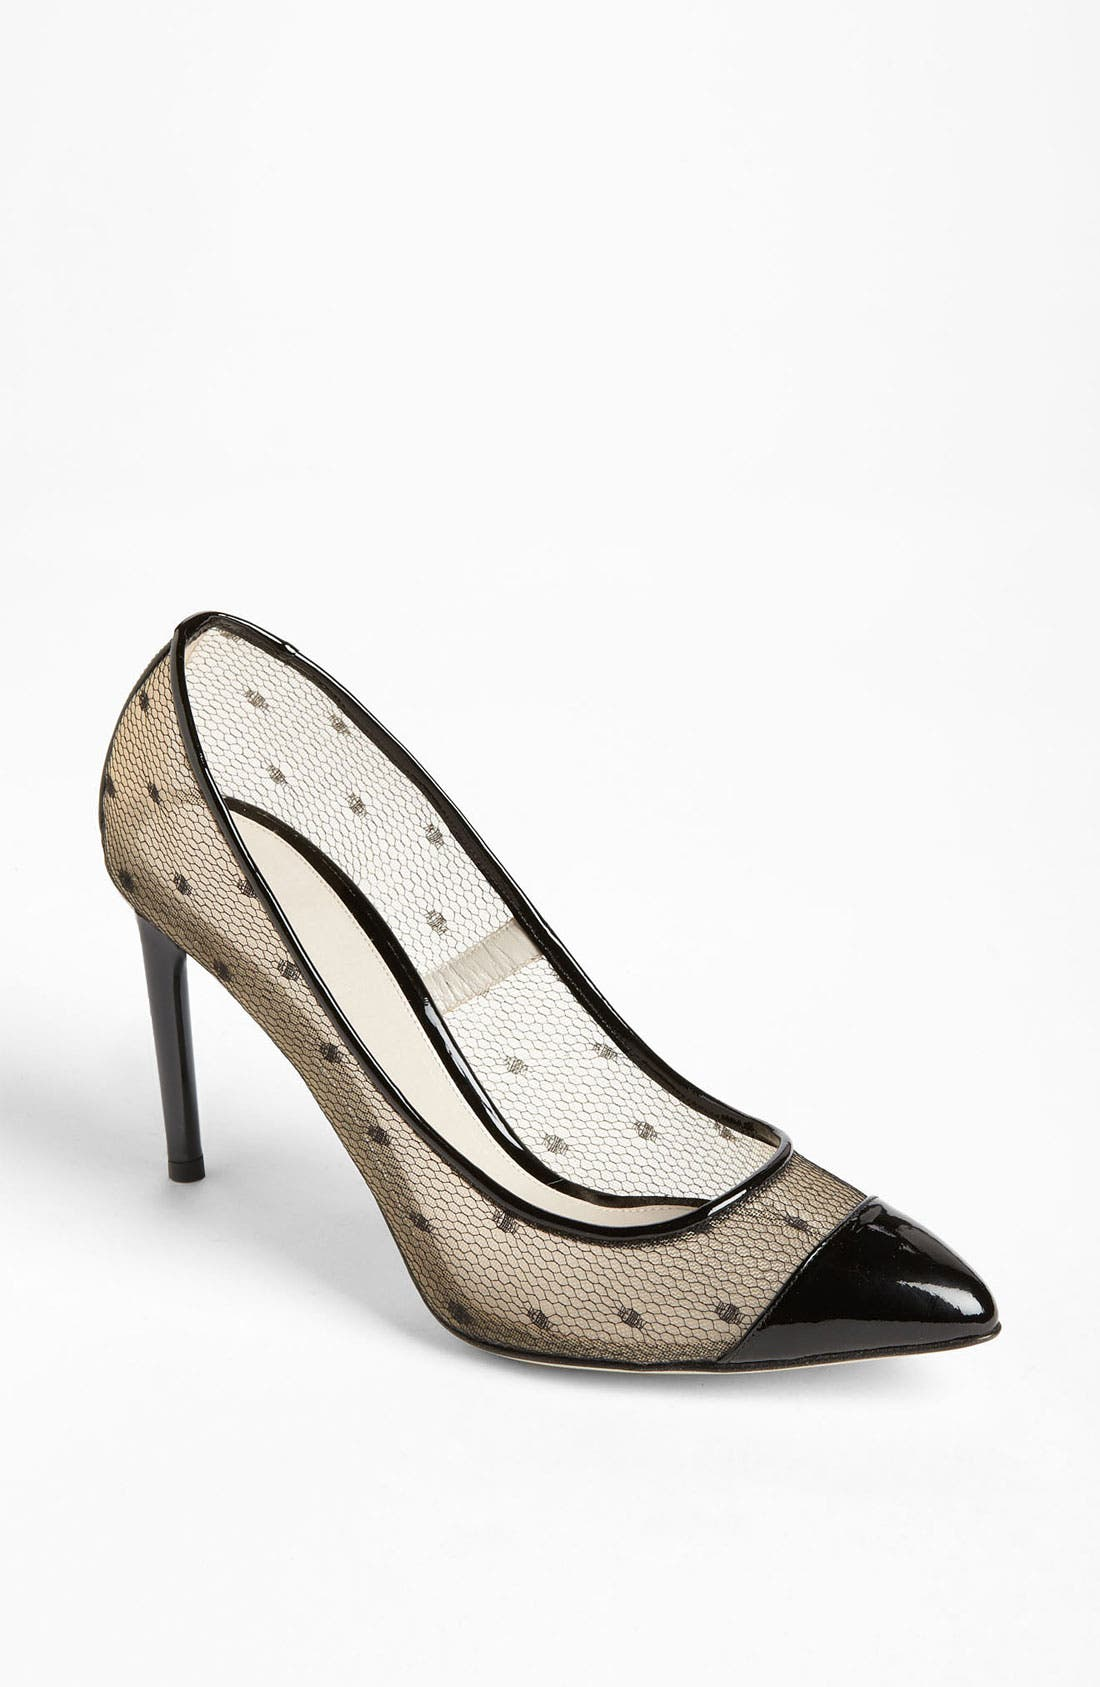 Alternate Image 1 Selected - Jason Wu 'Dovima' Pump